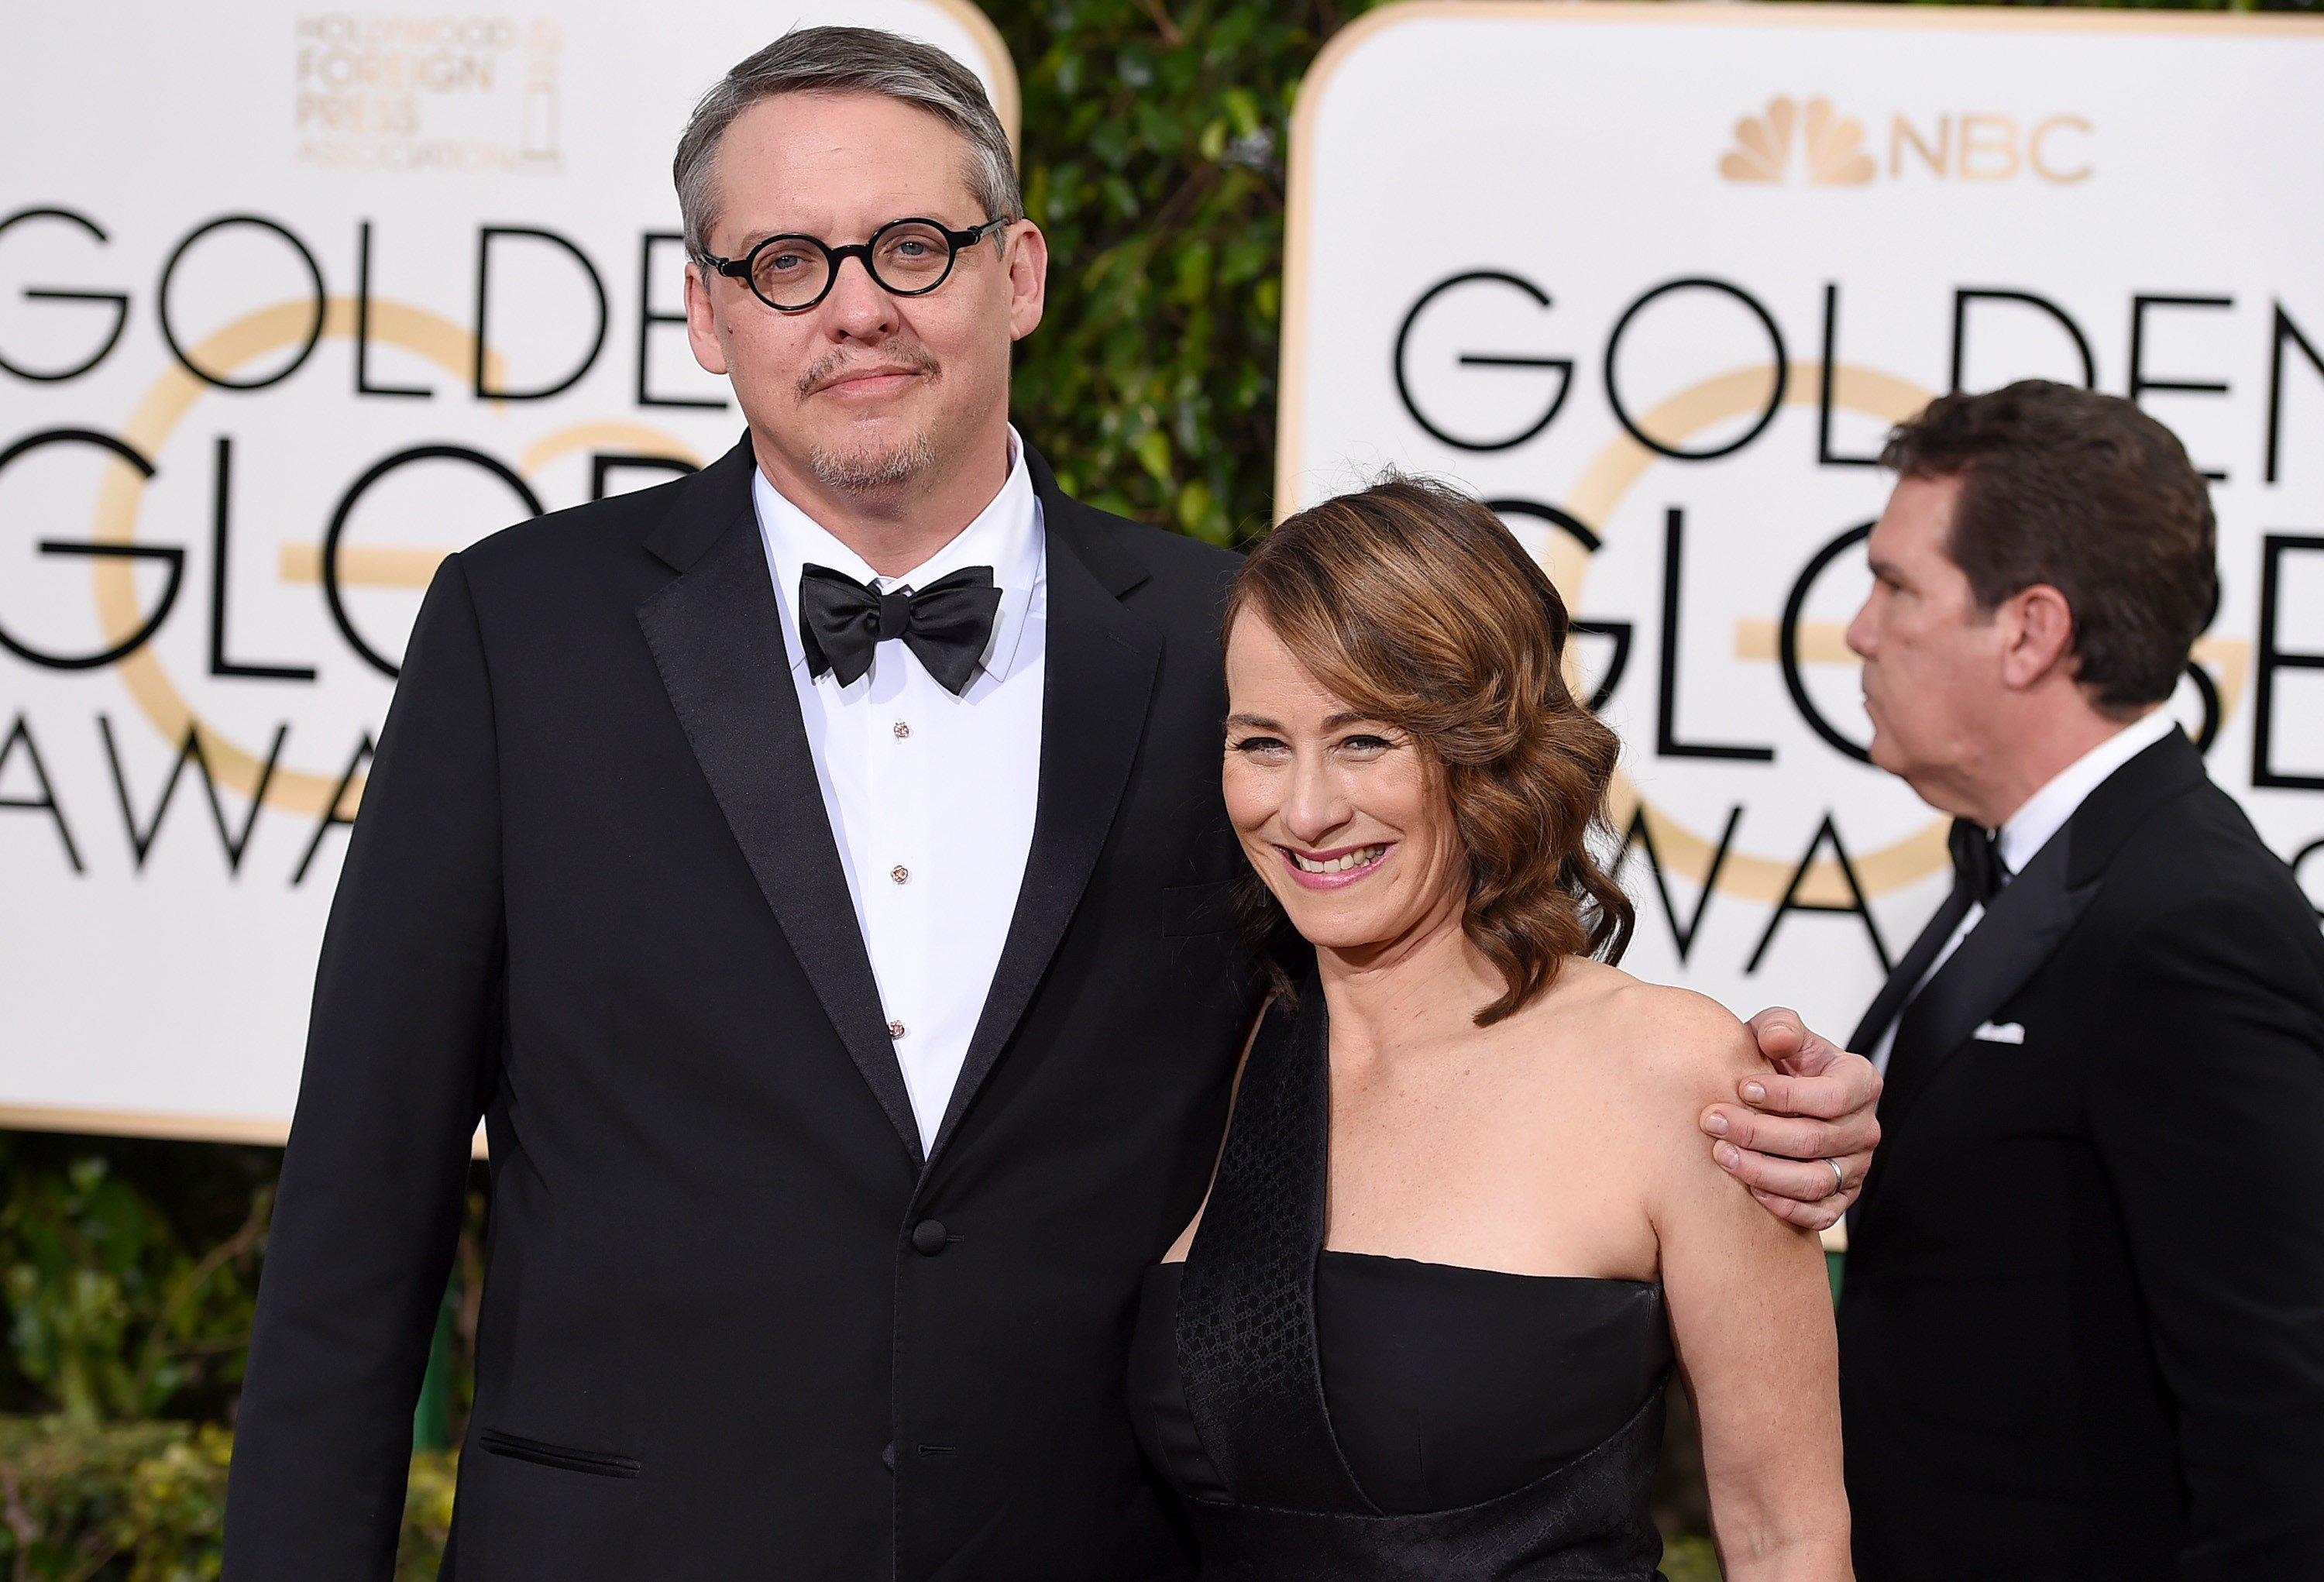 Adam McKay, left, and Shira Piven arrive at the 73rd annual Golden Globe Awards on Sunday, Jan. 10, 2016, at the Beverly Hilton Hotel in Beverly Hills, Calif. (Photo by Jordan Strauss/Invision/AP)